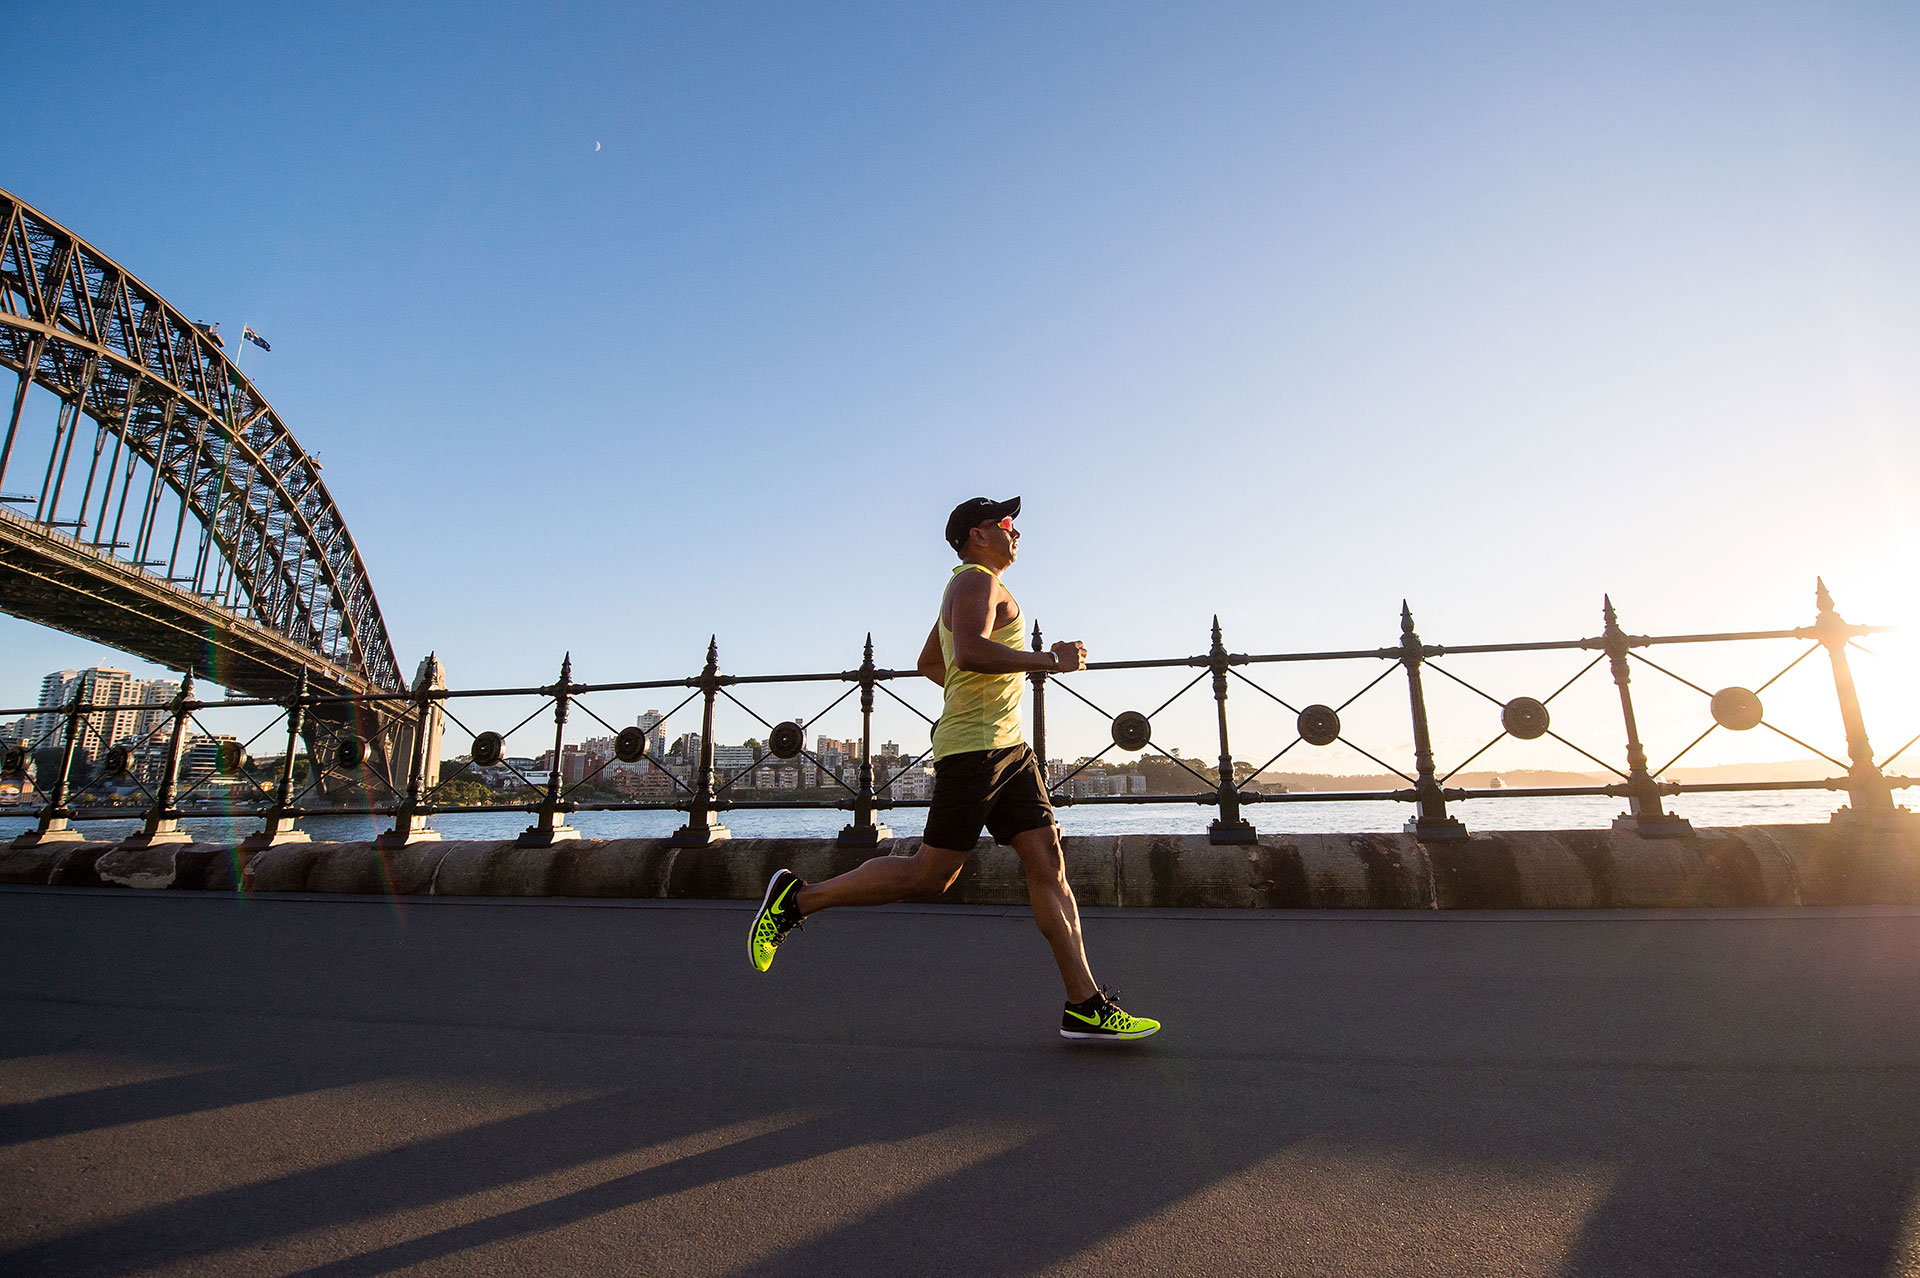 A man triumphantly jogs by a bridge, overcoming initial reluctance